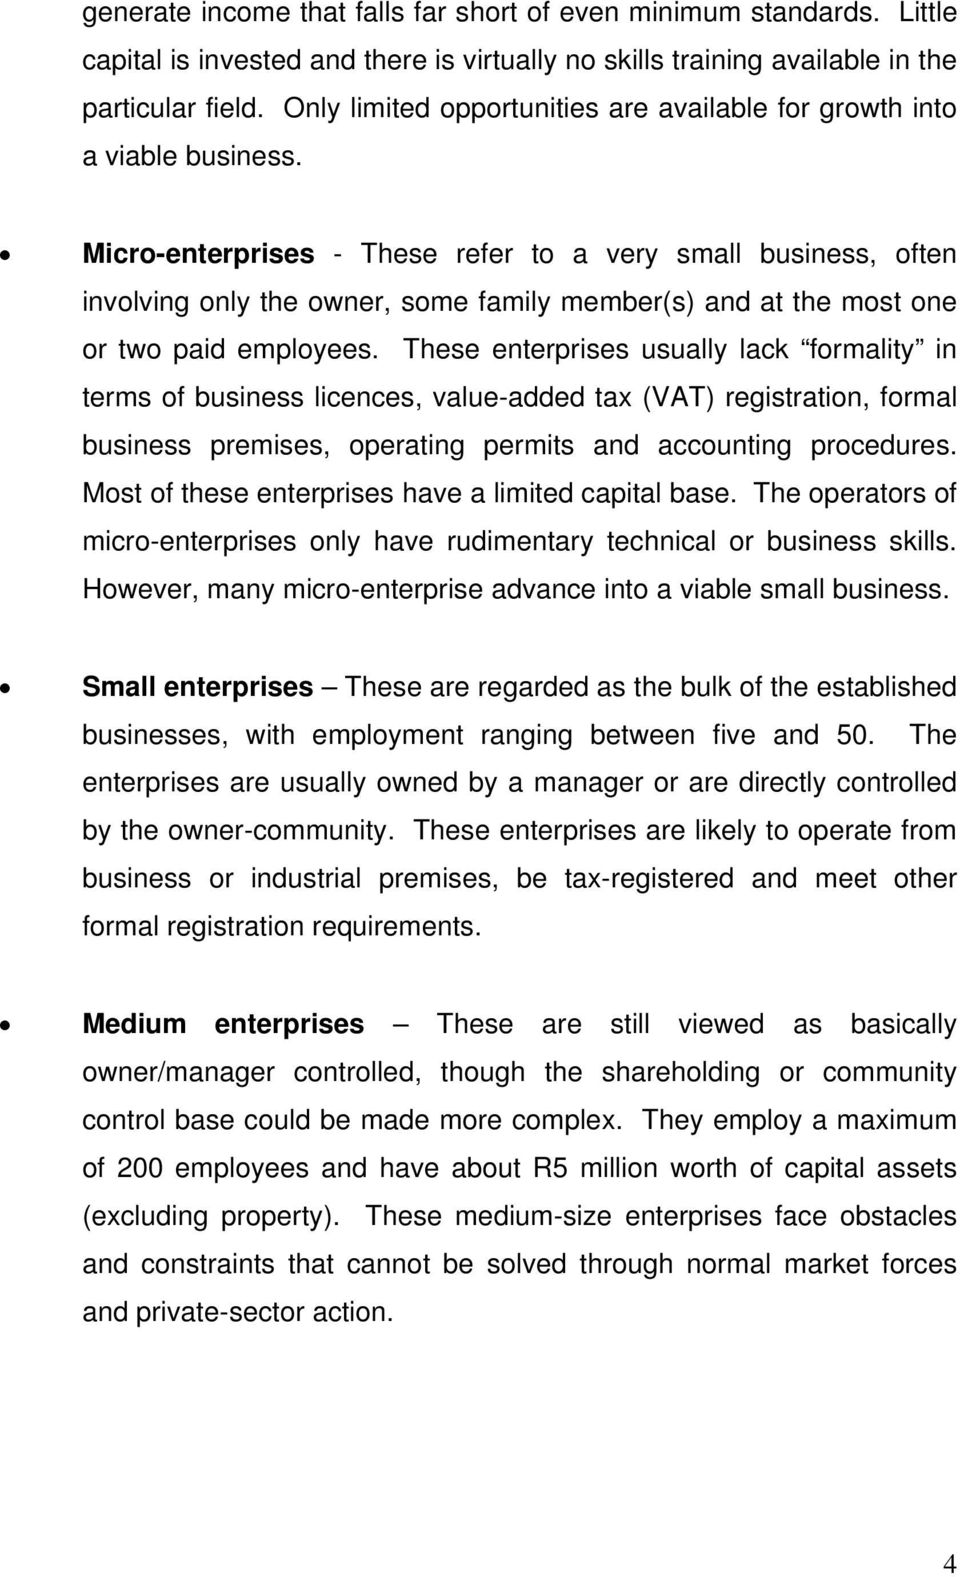 Micro-enterprises - These refer to a very small business, often involving only the owner, some family member(s) and at the most one or two paid employees.